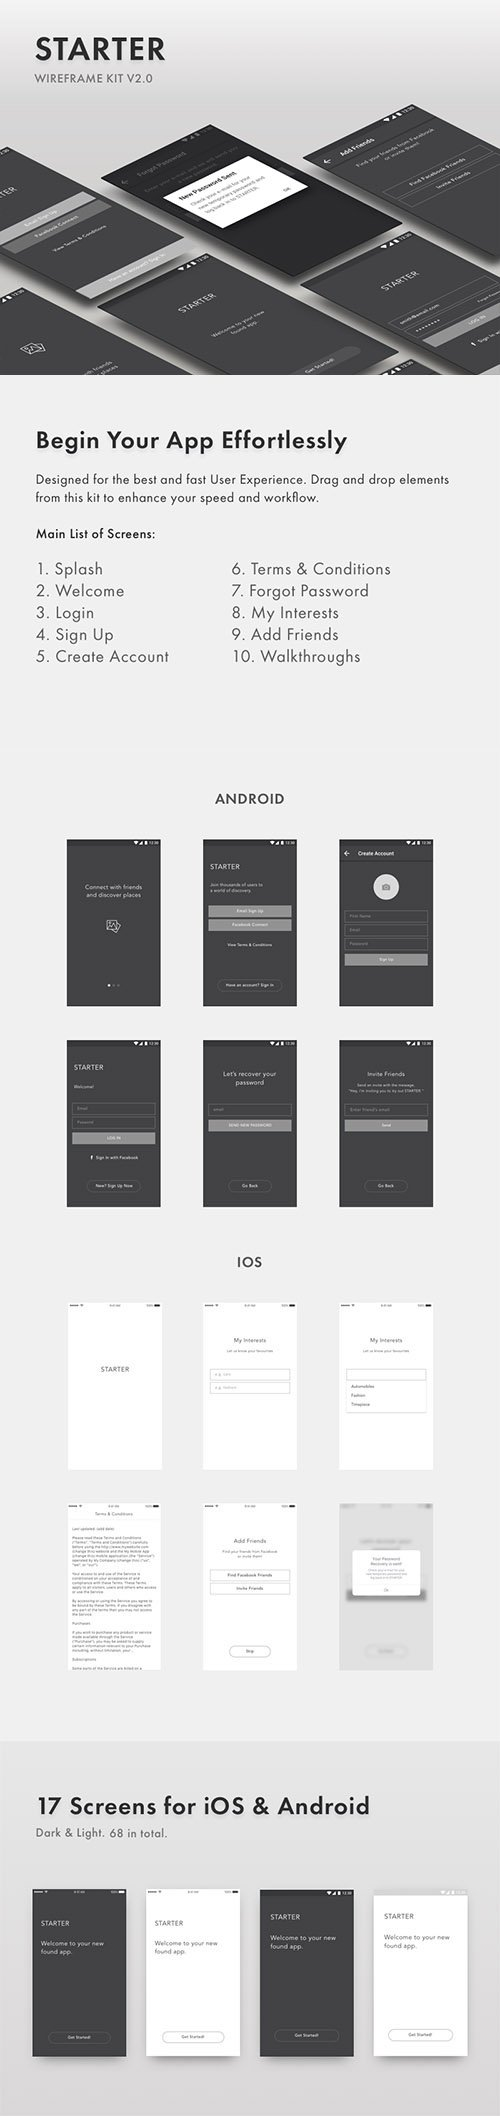 Starter Wireframe Kit v2.0